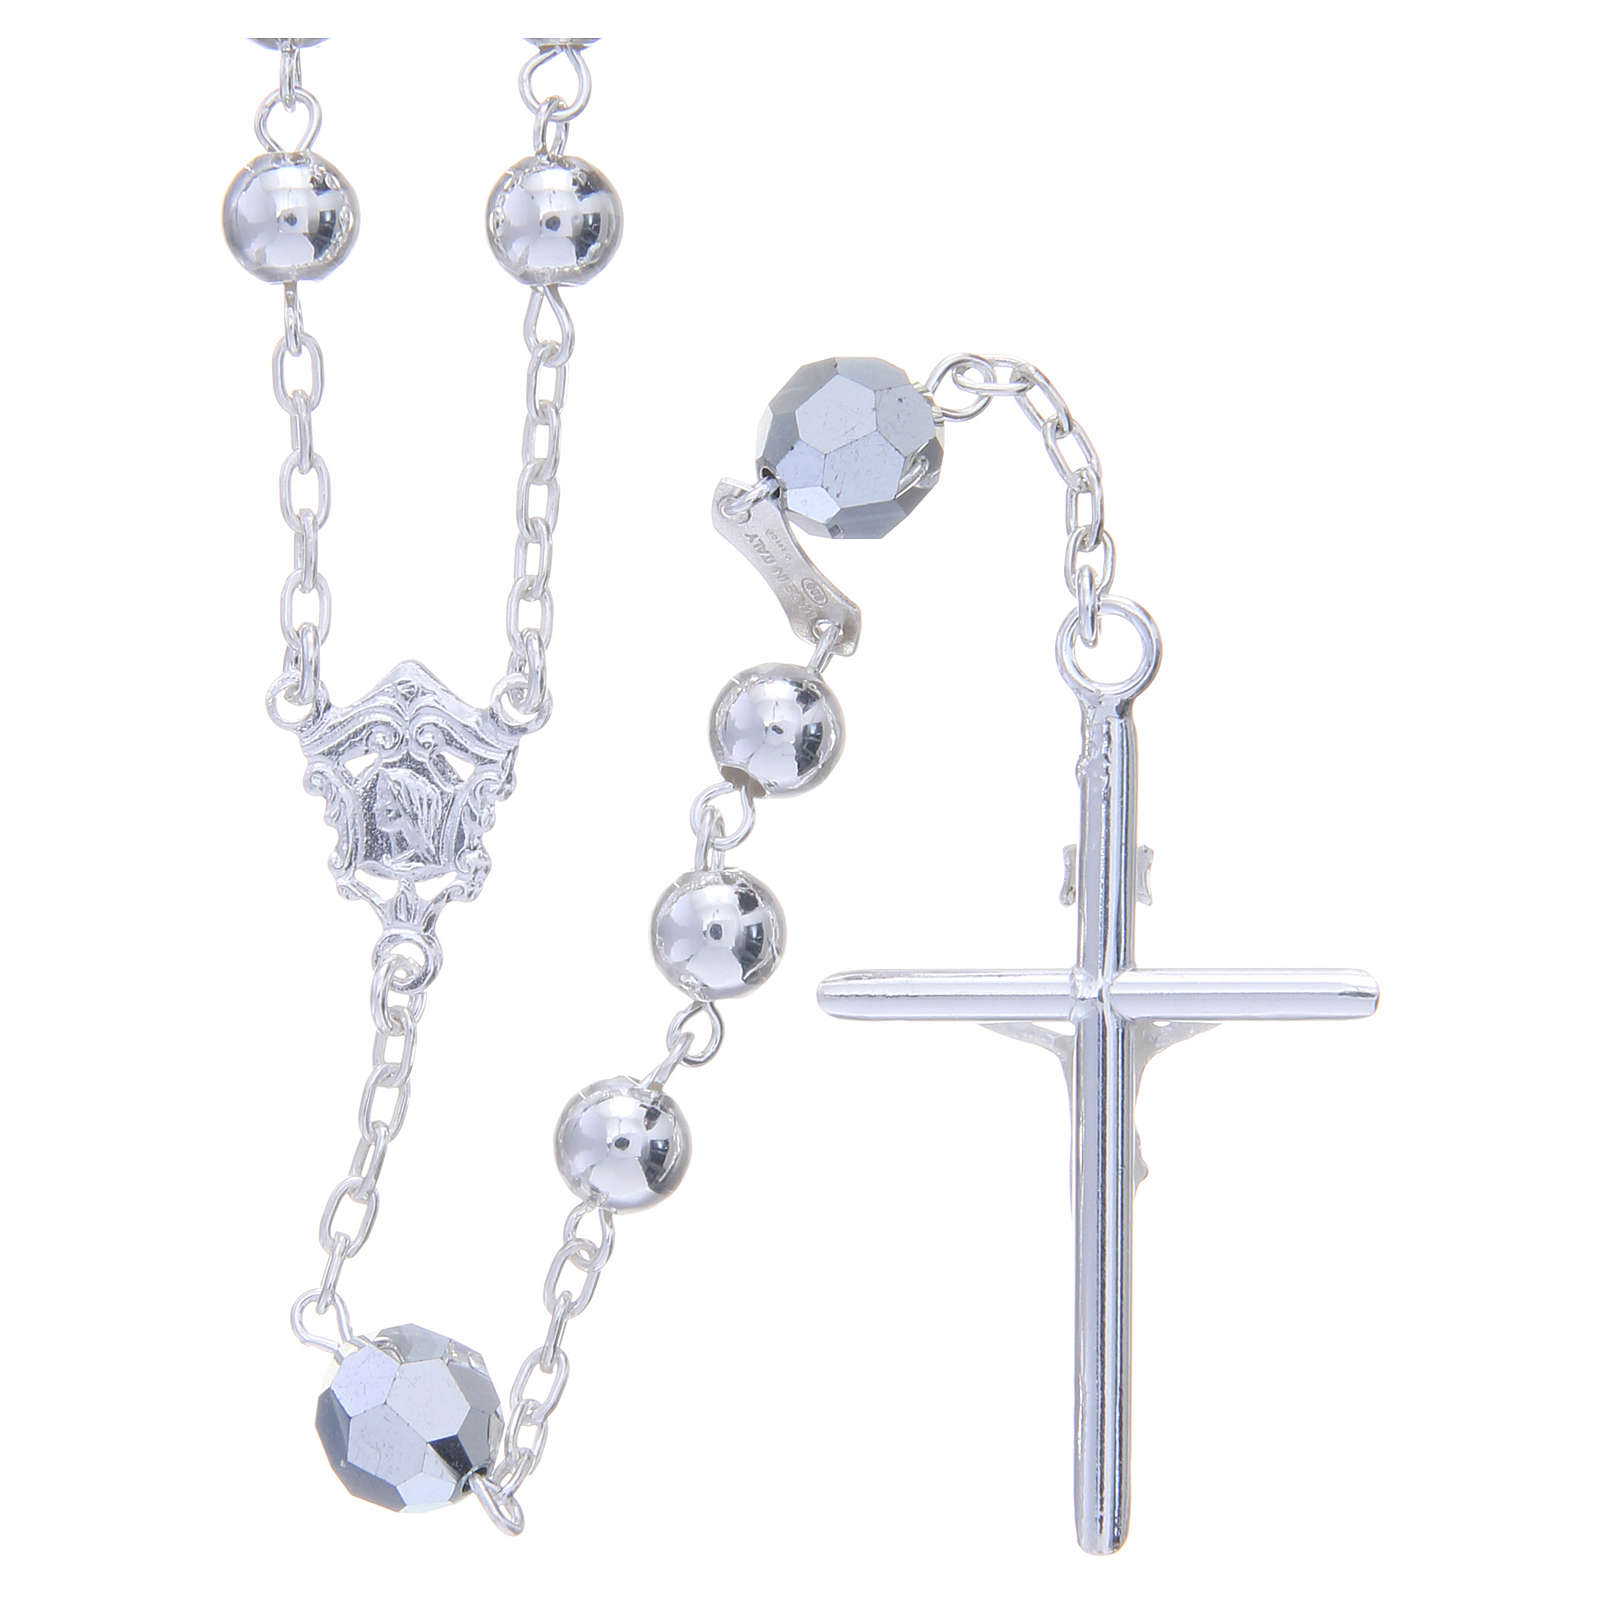 Rosary beads in 800 silver, 6mm and pater beads in metallic Swarovski 4